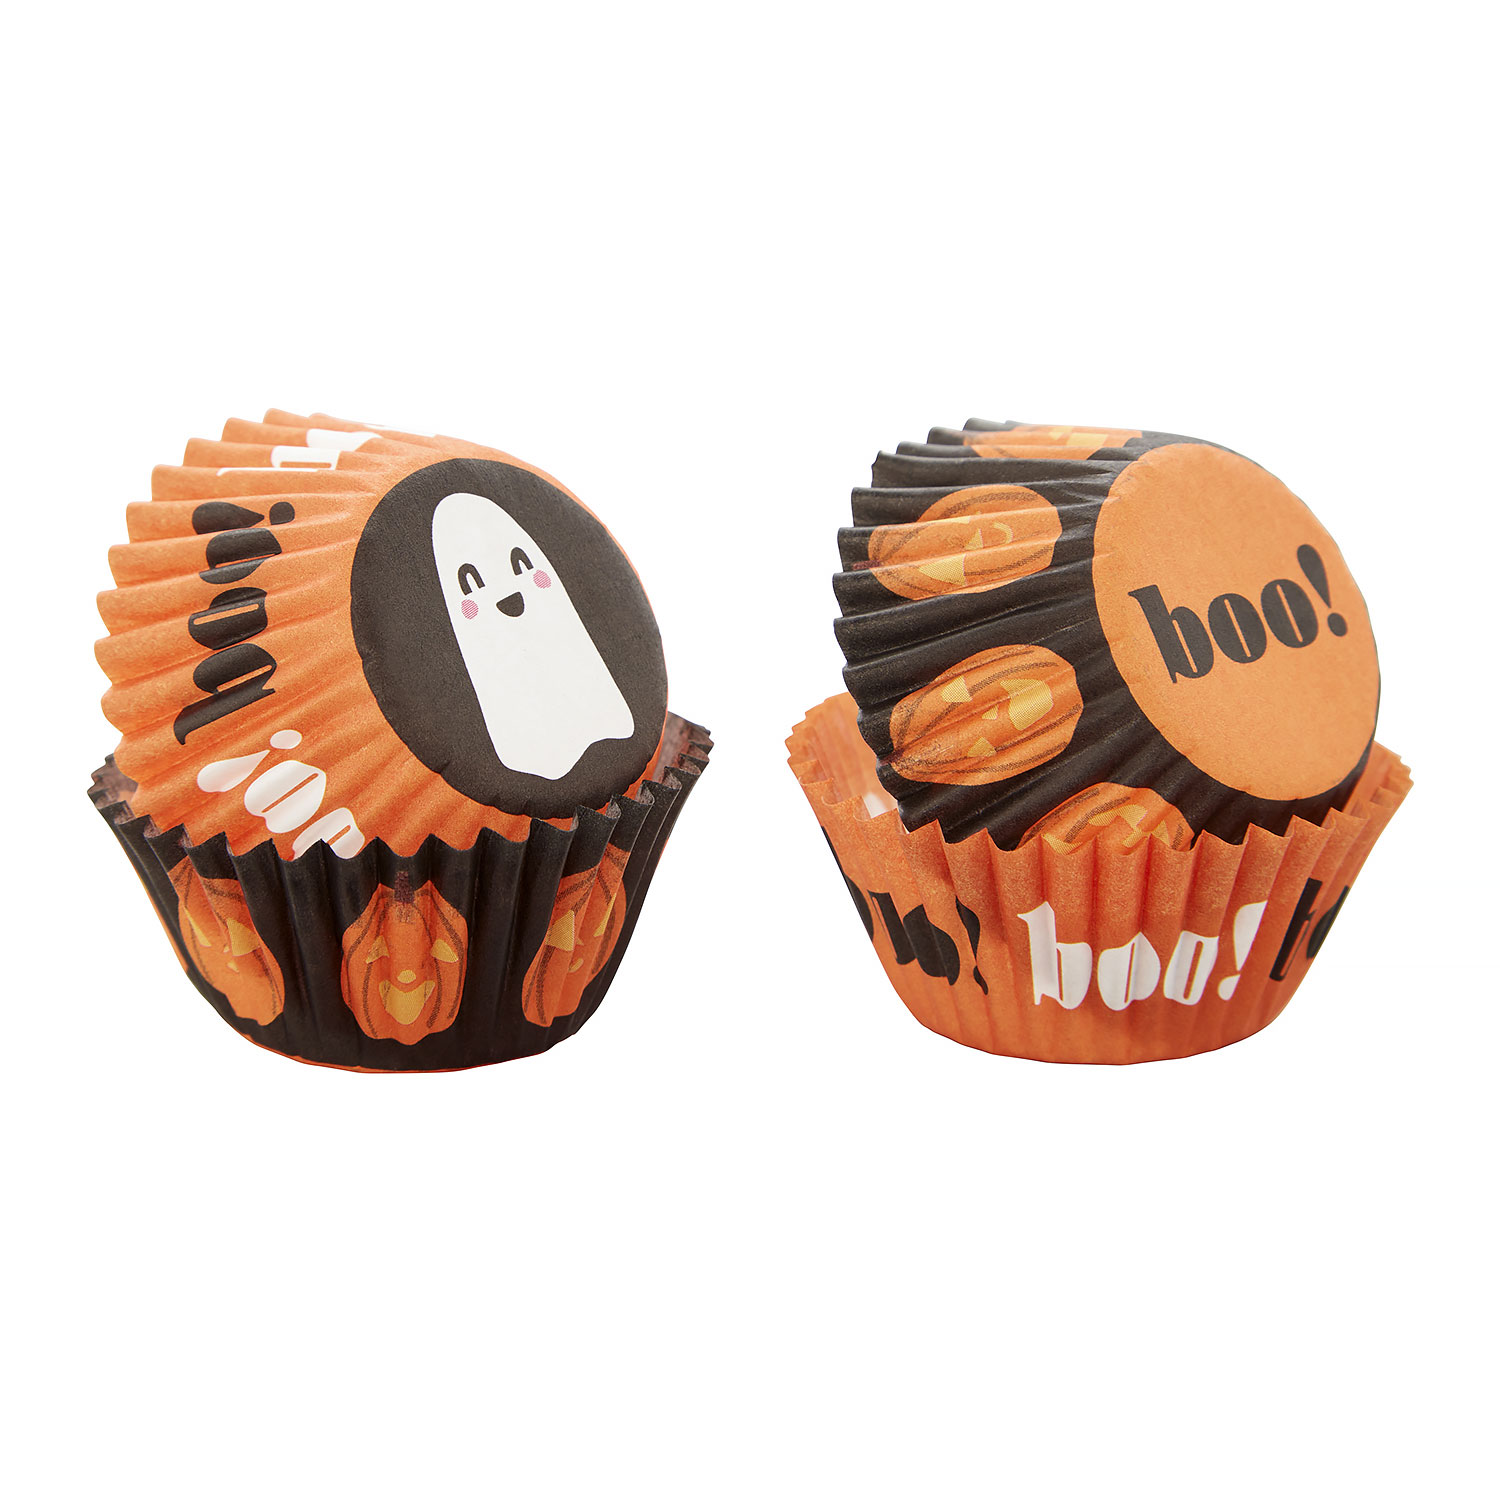 Red Doily Standard Baking Cup Kit